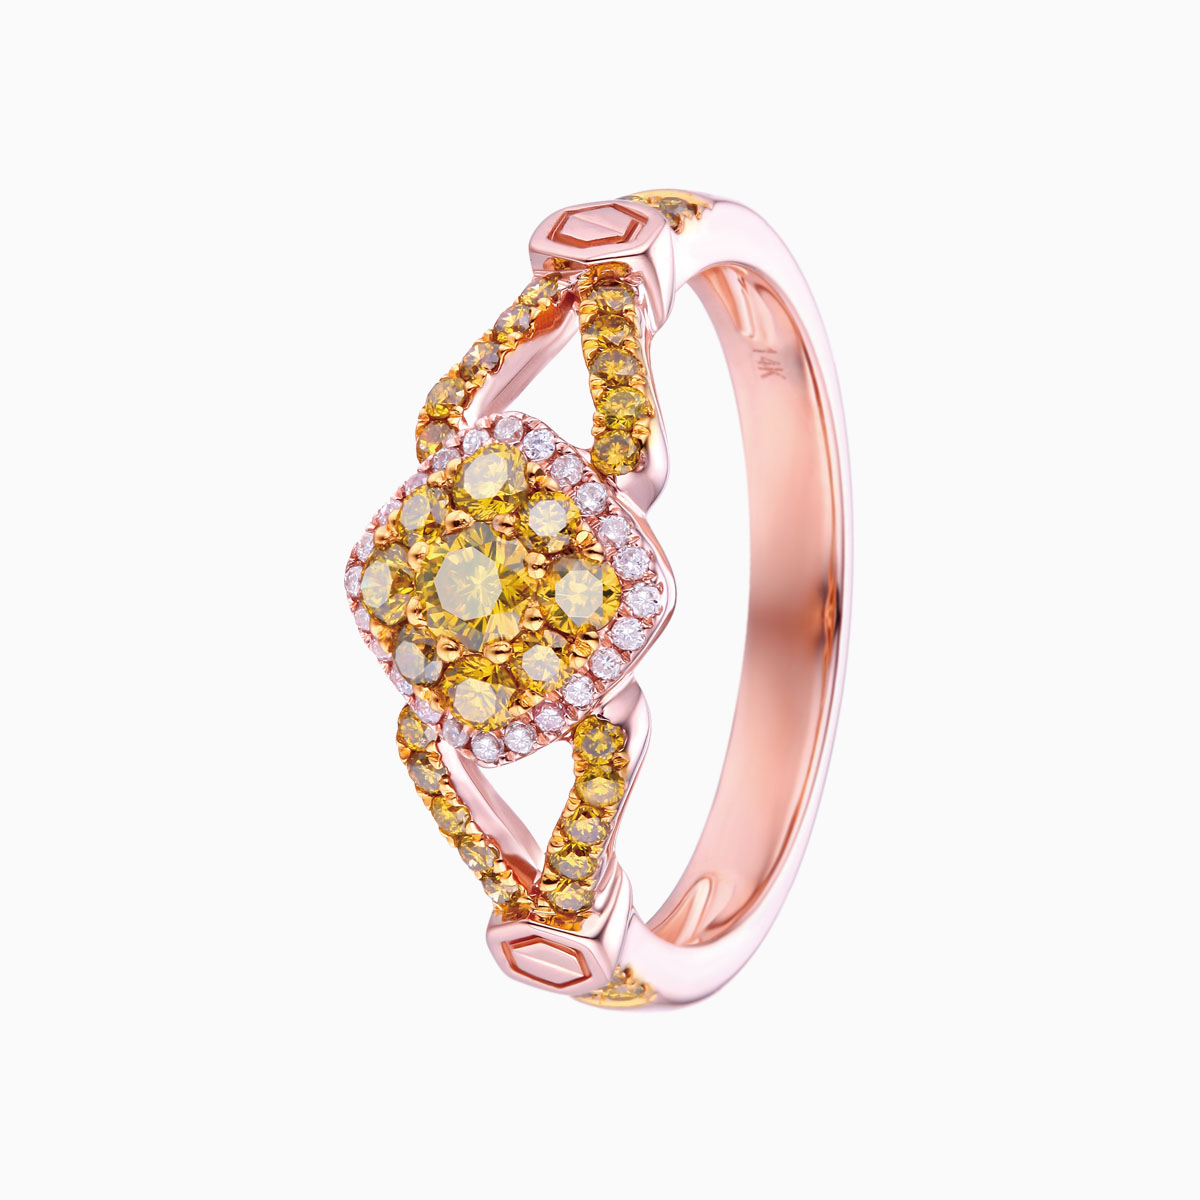 R17416YEL- 14K Rose Gold Diamond Ring, 0.64 TCW